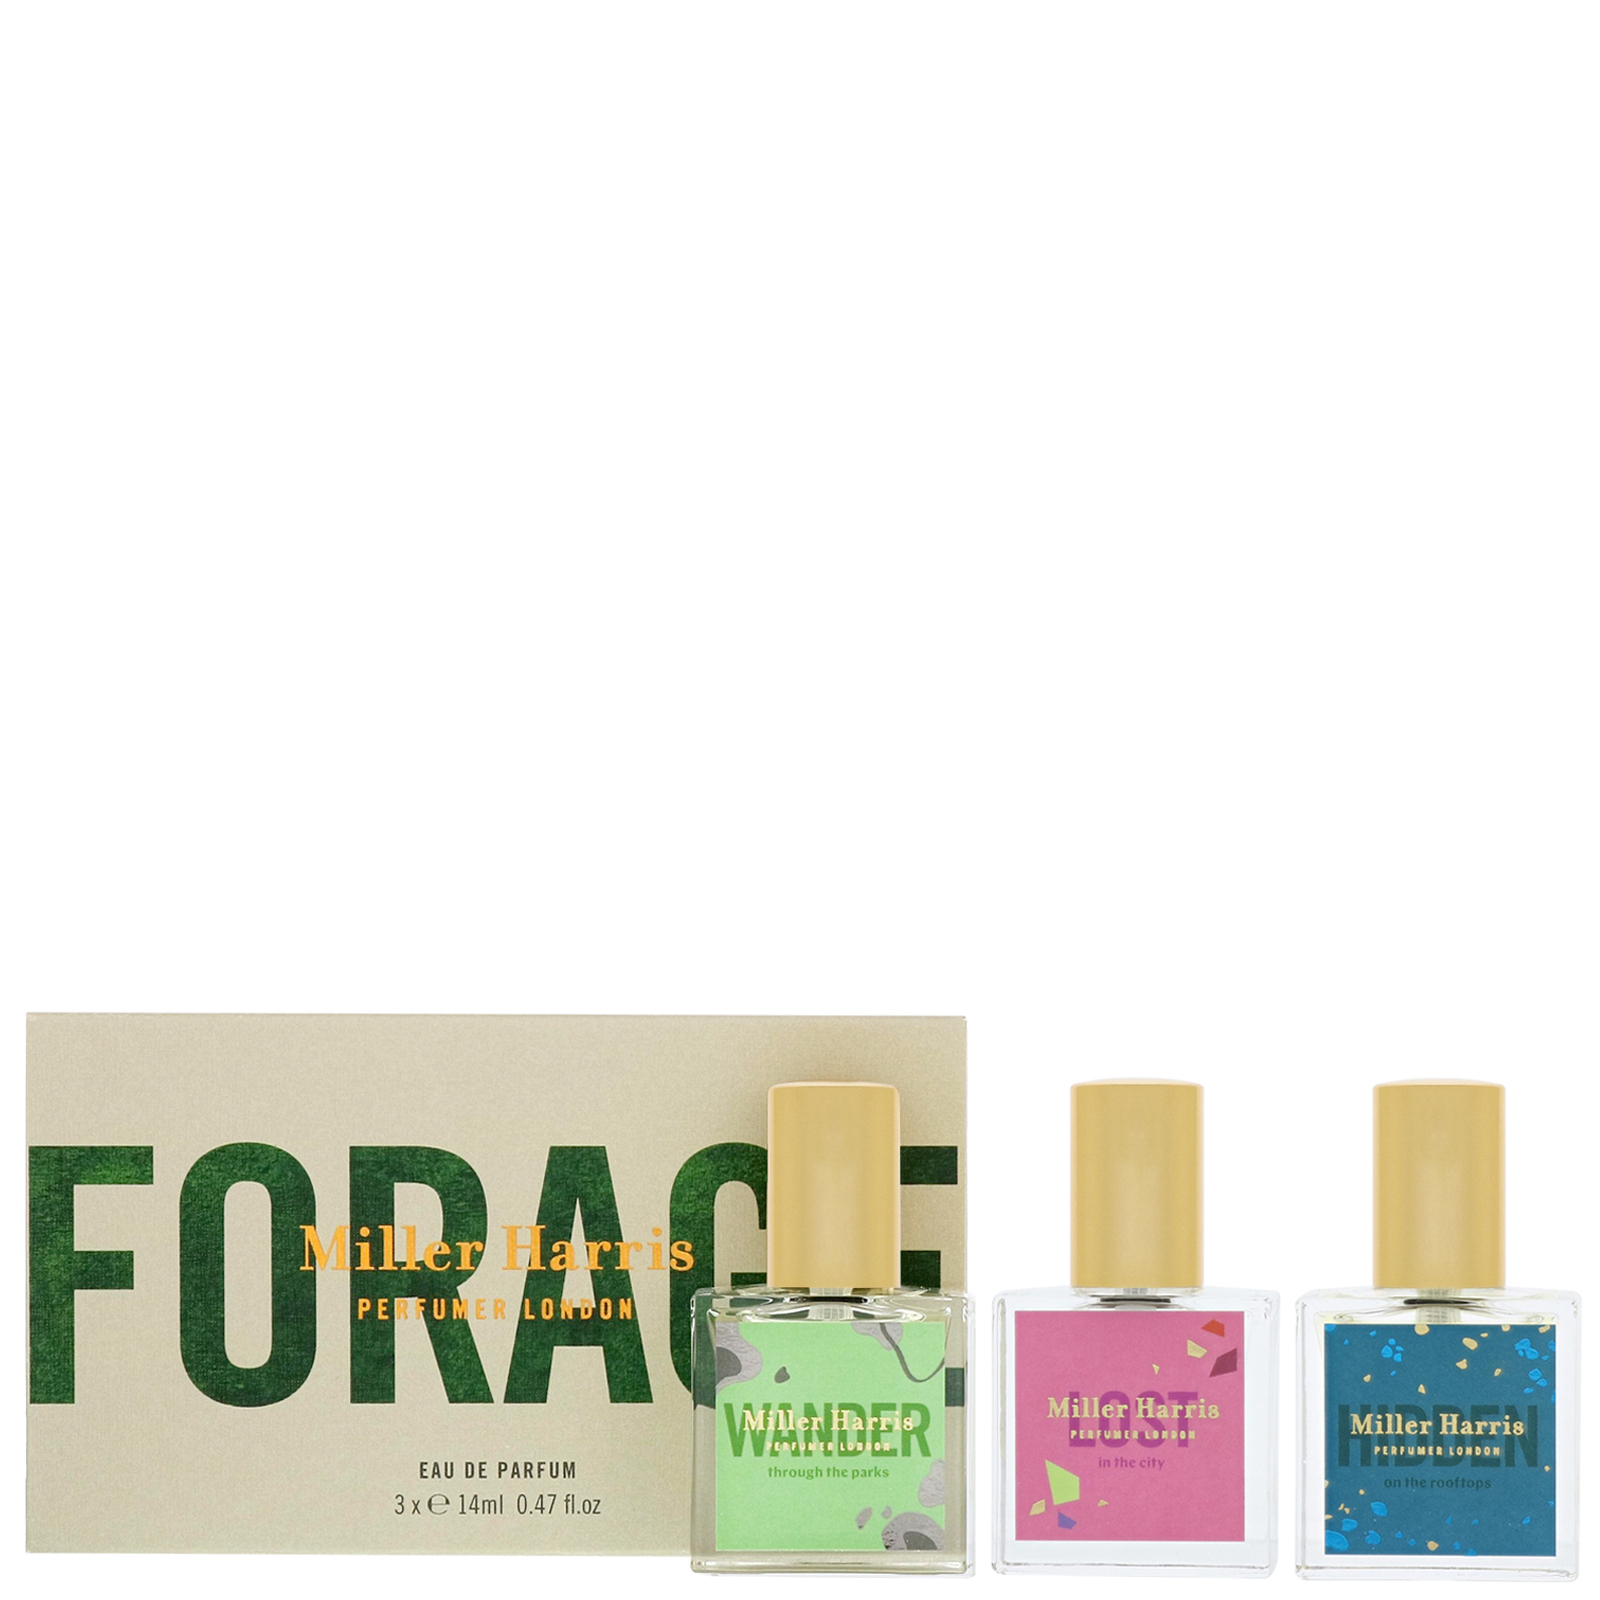 Miller Harris Forage Forage Trio Gift Set